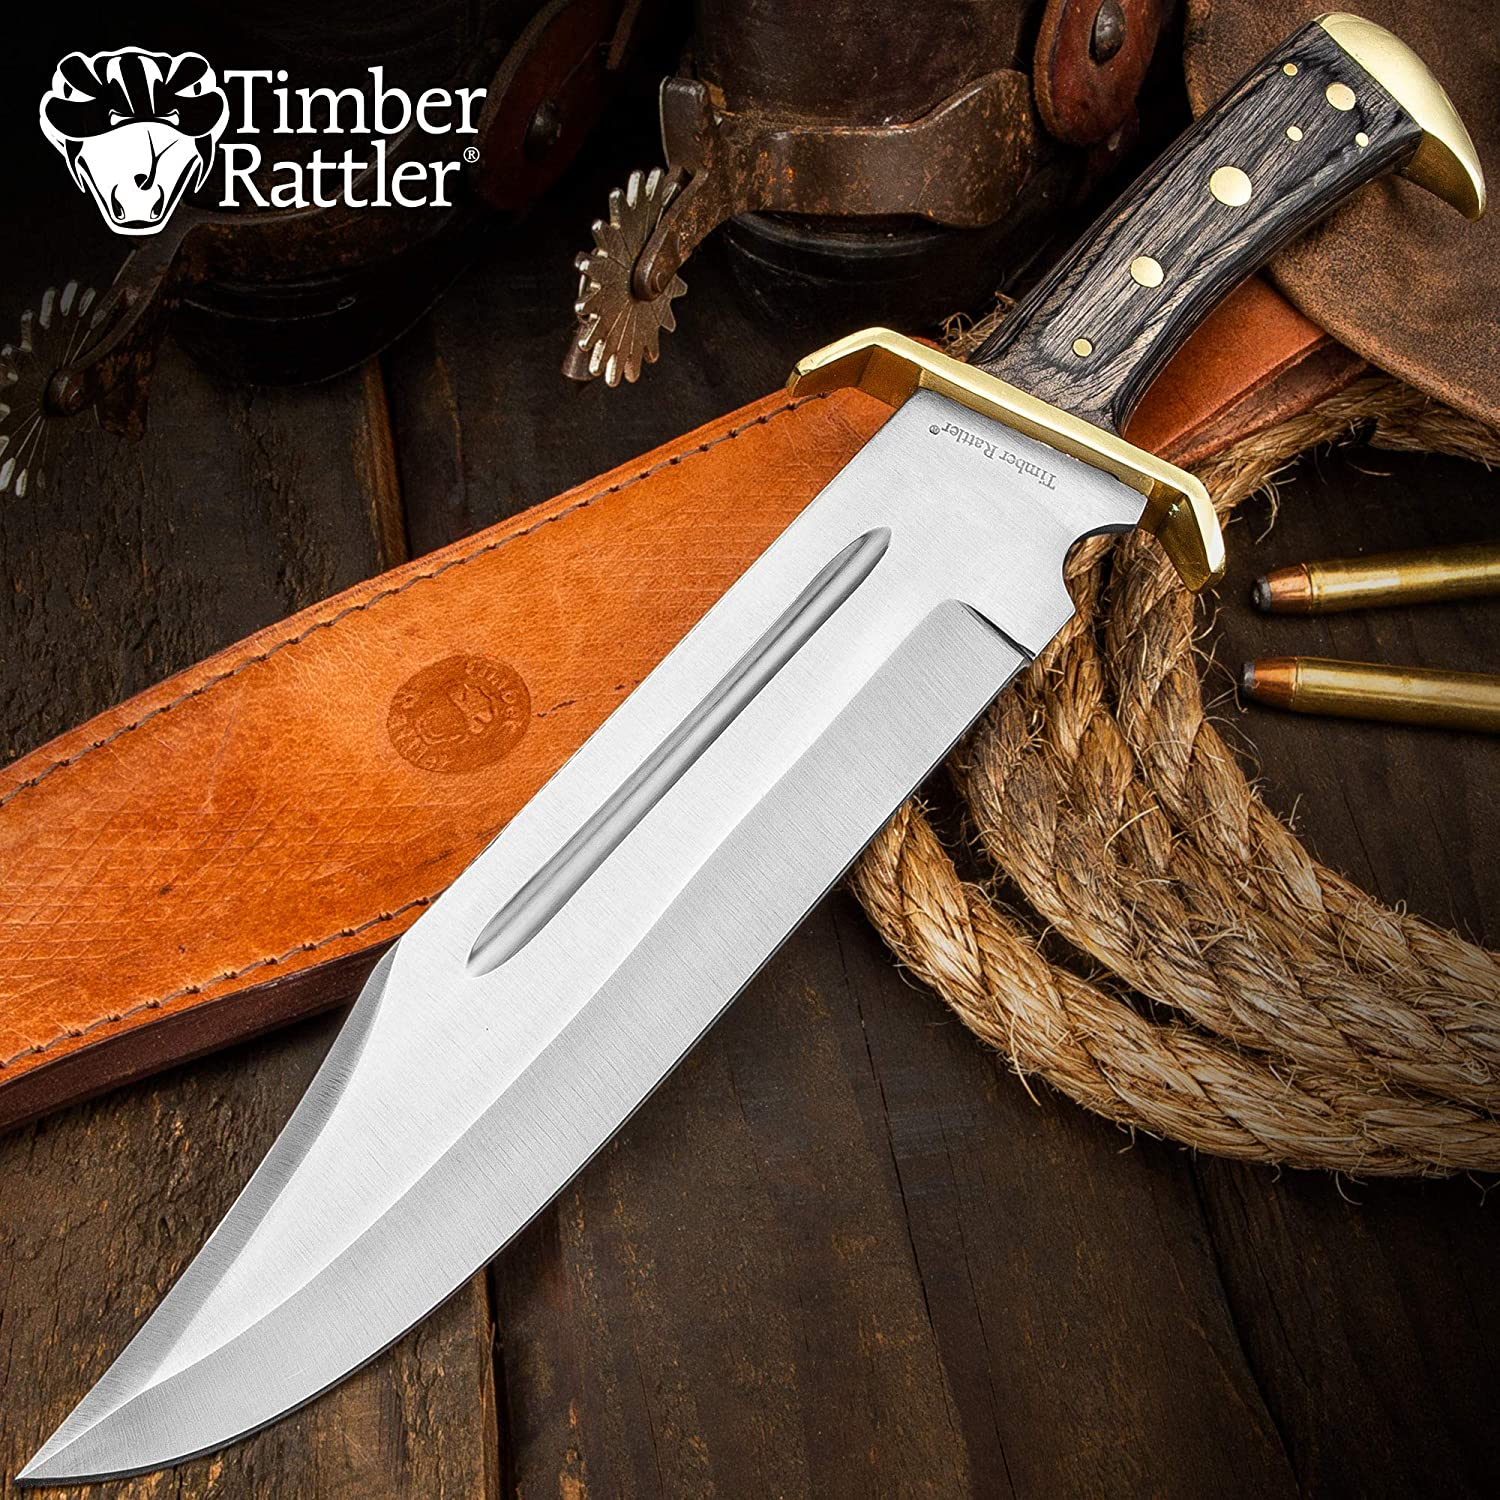 Timber Rattler Western Full Tang Bowie with Leather Sheath on a wooden table